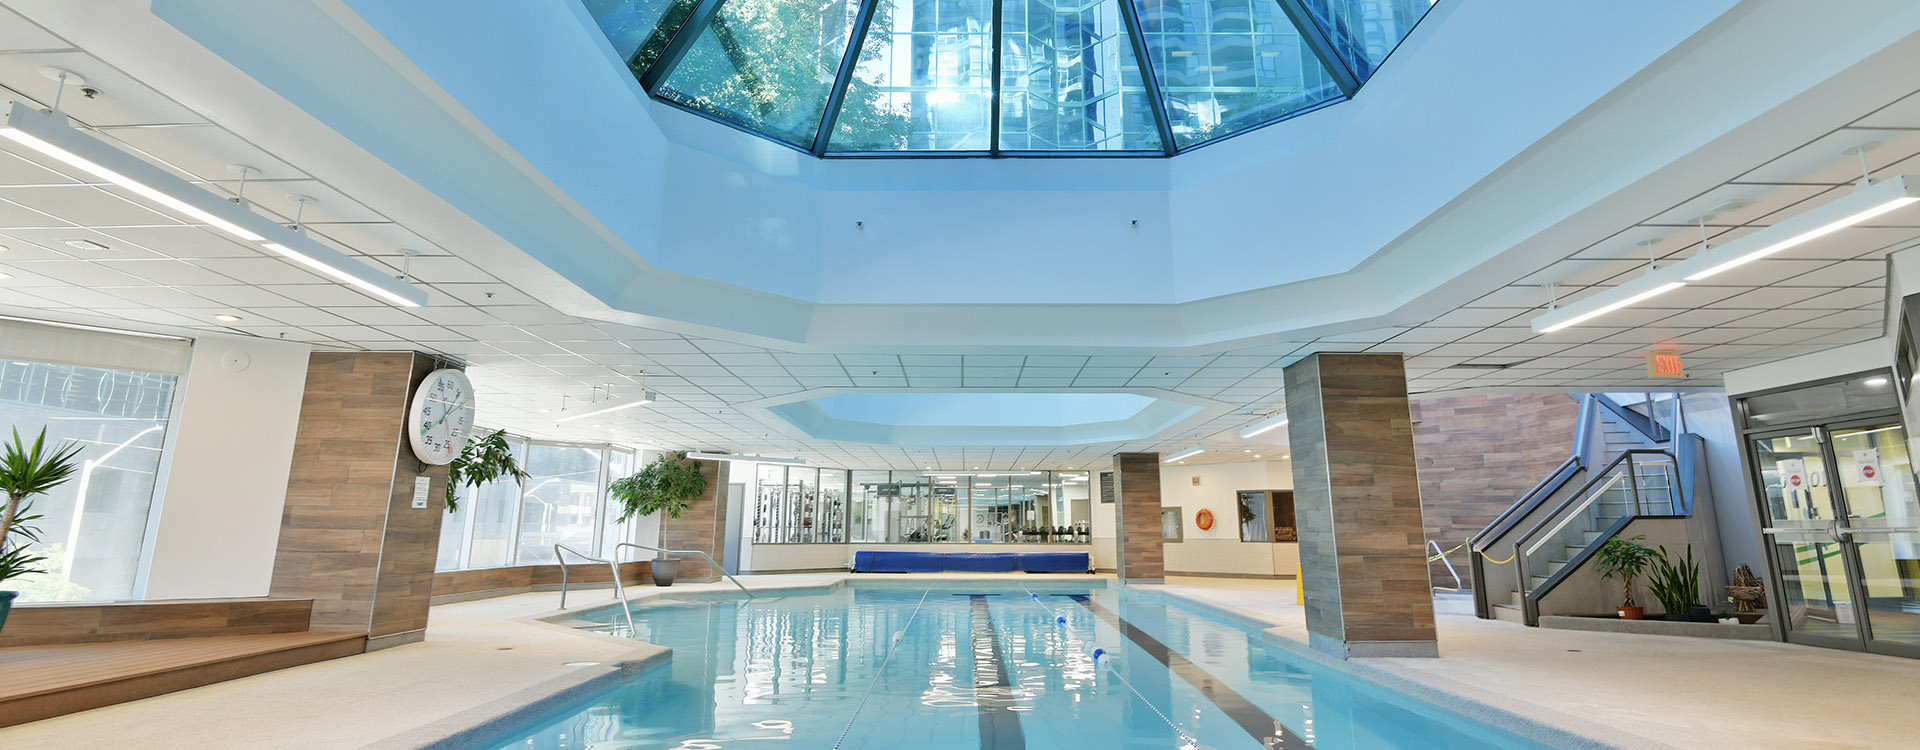 Indoor pool at one80five furnished suites in Ottawa. Rent with Minto Apartments.